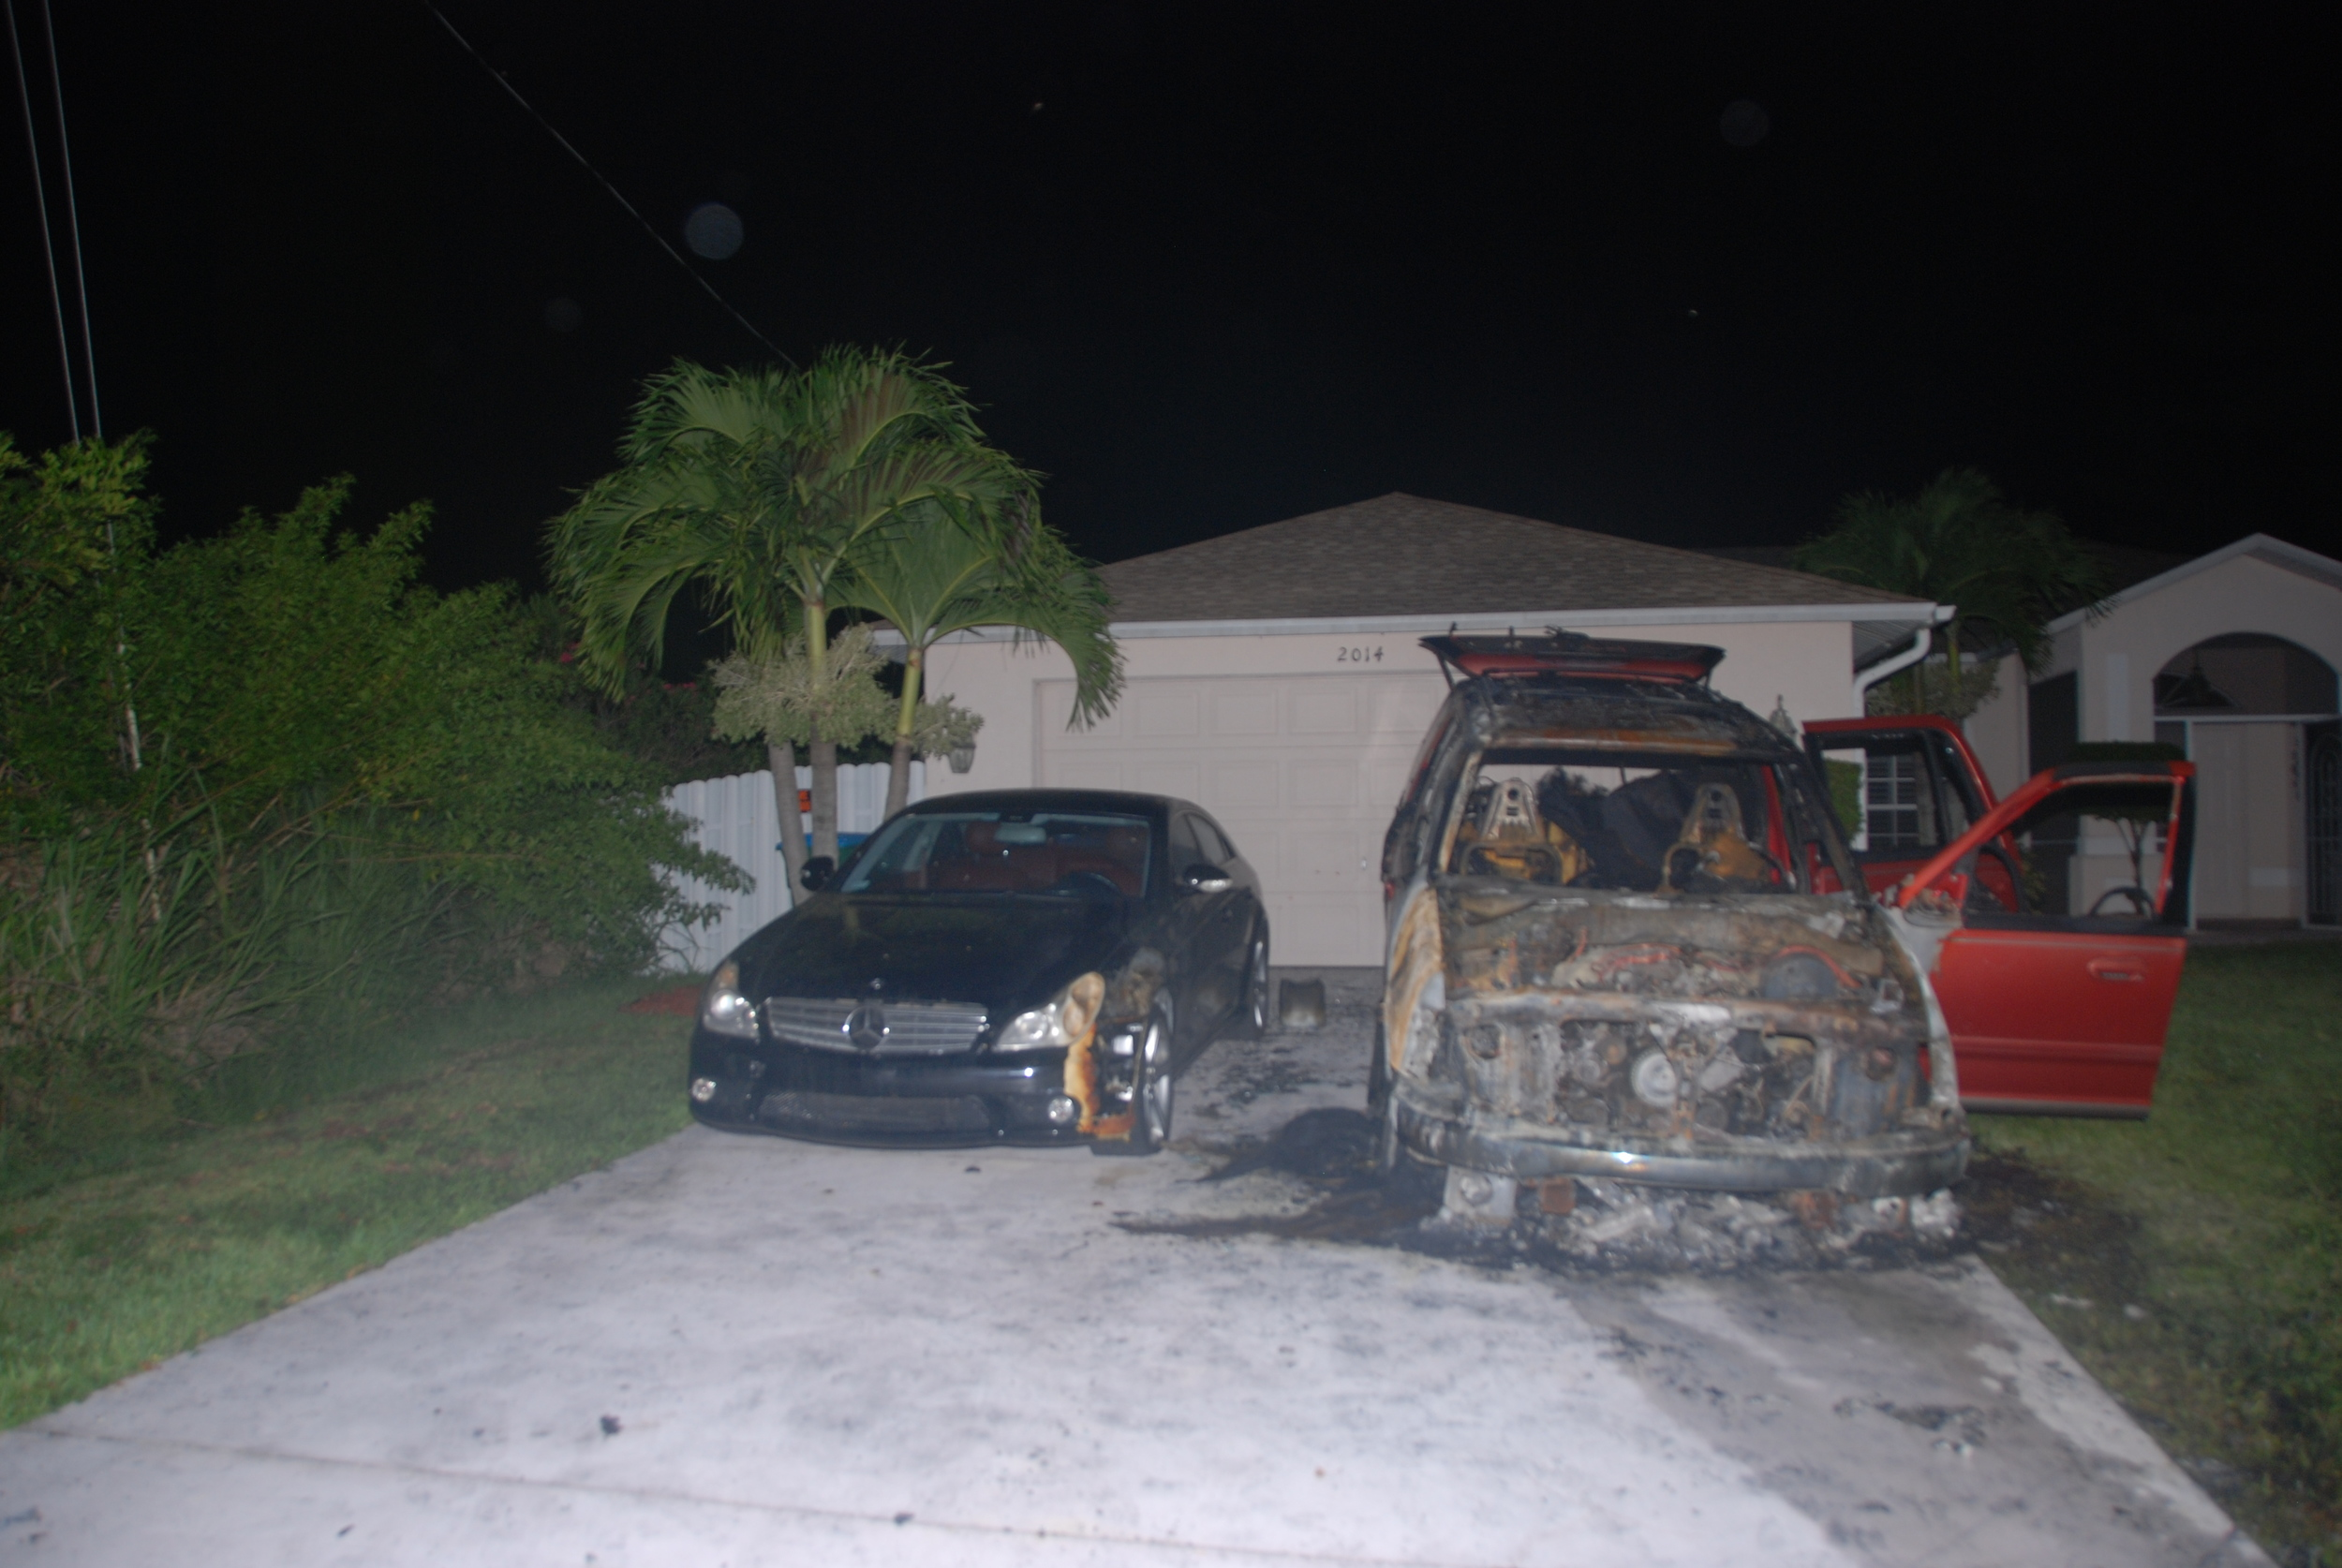 PHOTO: On Saturday at 8:30 PM,Cape Coral Police Department received numerous calls regarding a fire at 2014 NW 25 Place, Cape Coral. Cape Coral Fire and Police units responded to the scene, finding a large fire with billowing, toxic smoke, involving two vehicles parked in the residence's driveway just feet from the home. Cape Coral Fire Department personnel extinguished the fire, which is now thought to be suspicious in nature. (Photo Courtesy of Cape Coral Police Department)